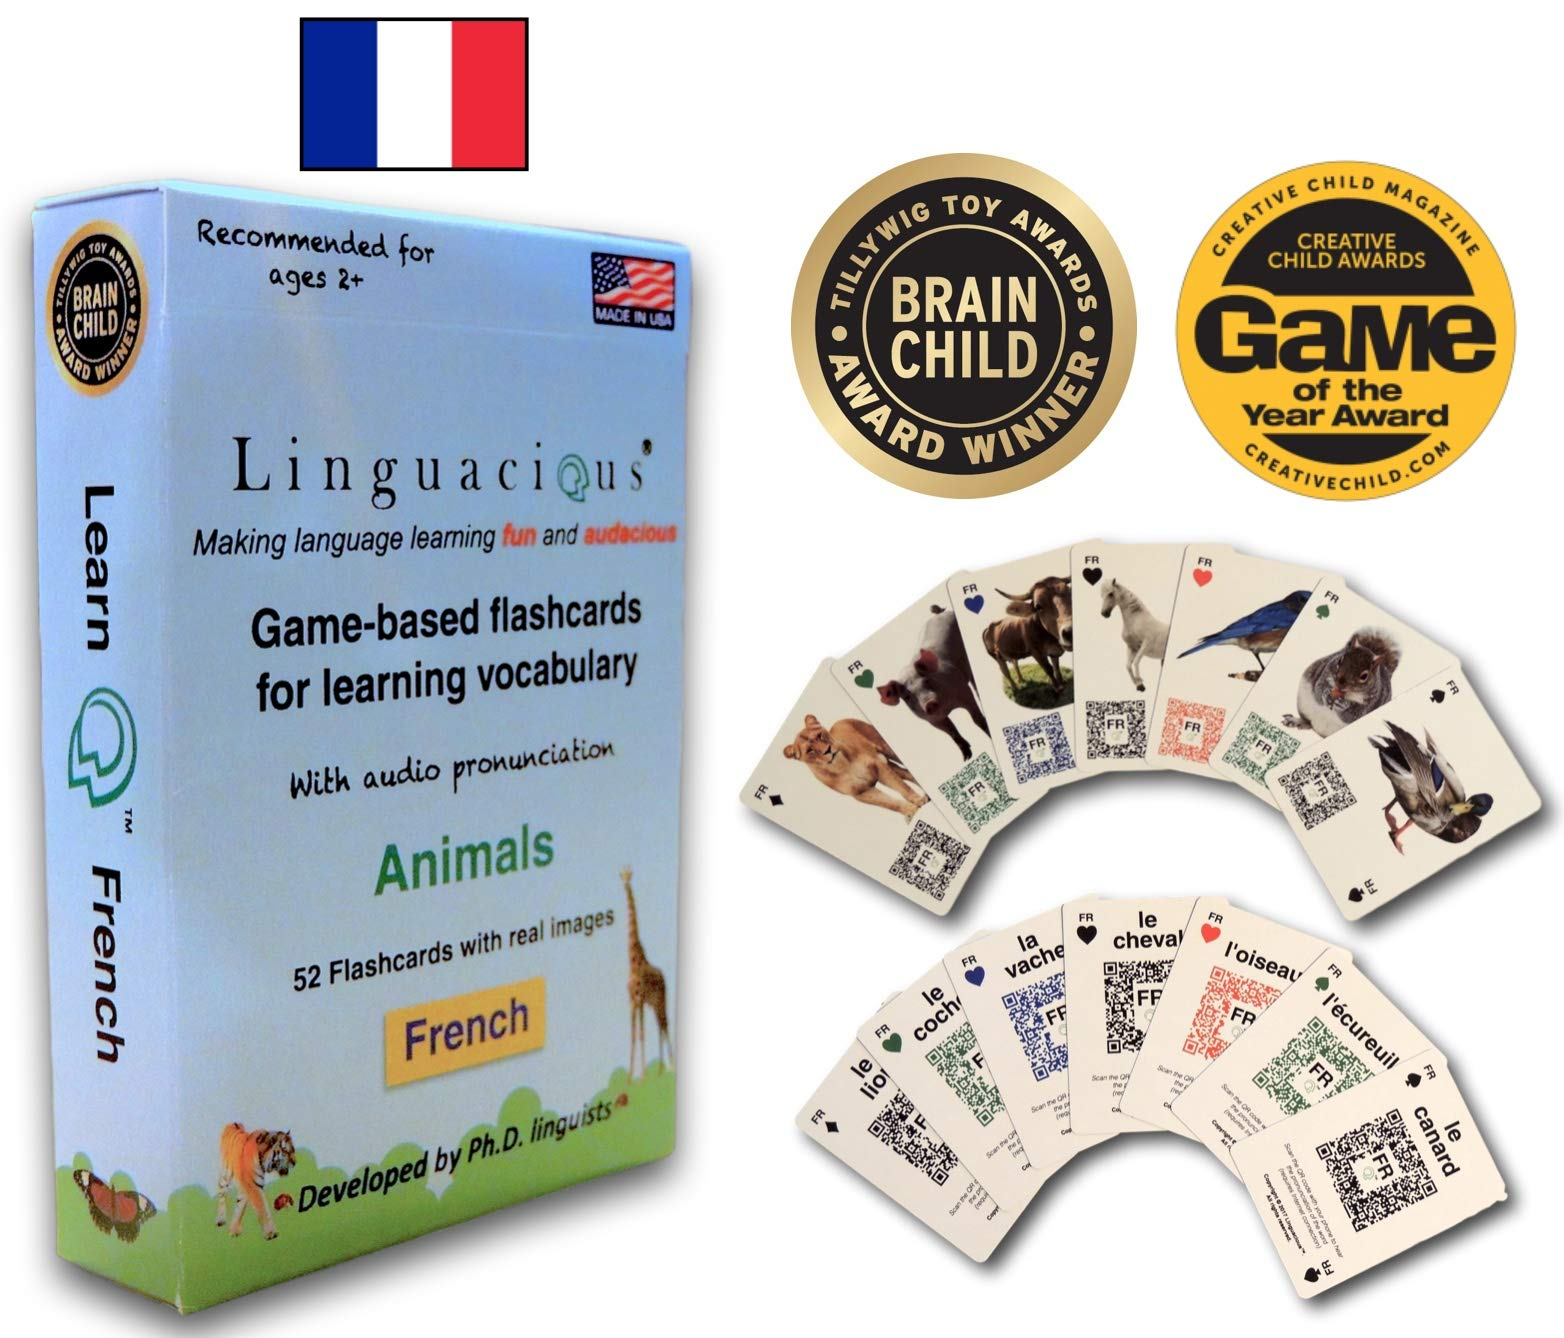 Linguacious Award-Winning French Animals Flashcard Game - The ONLY One with Audio!